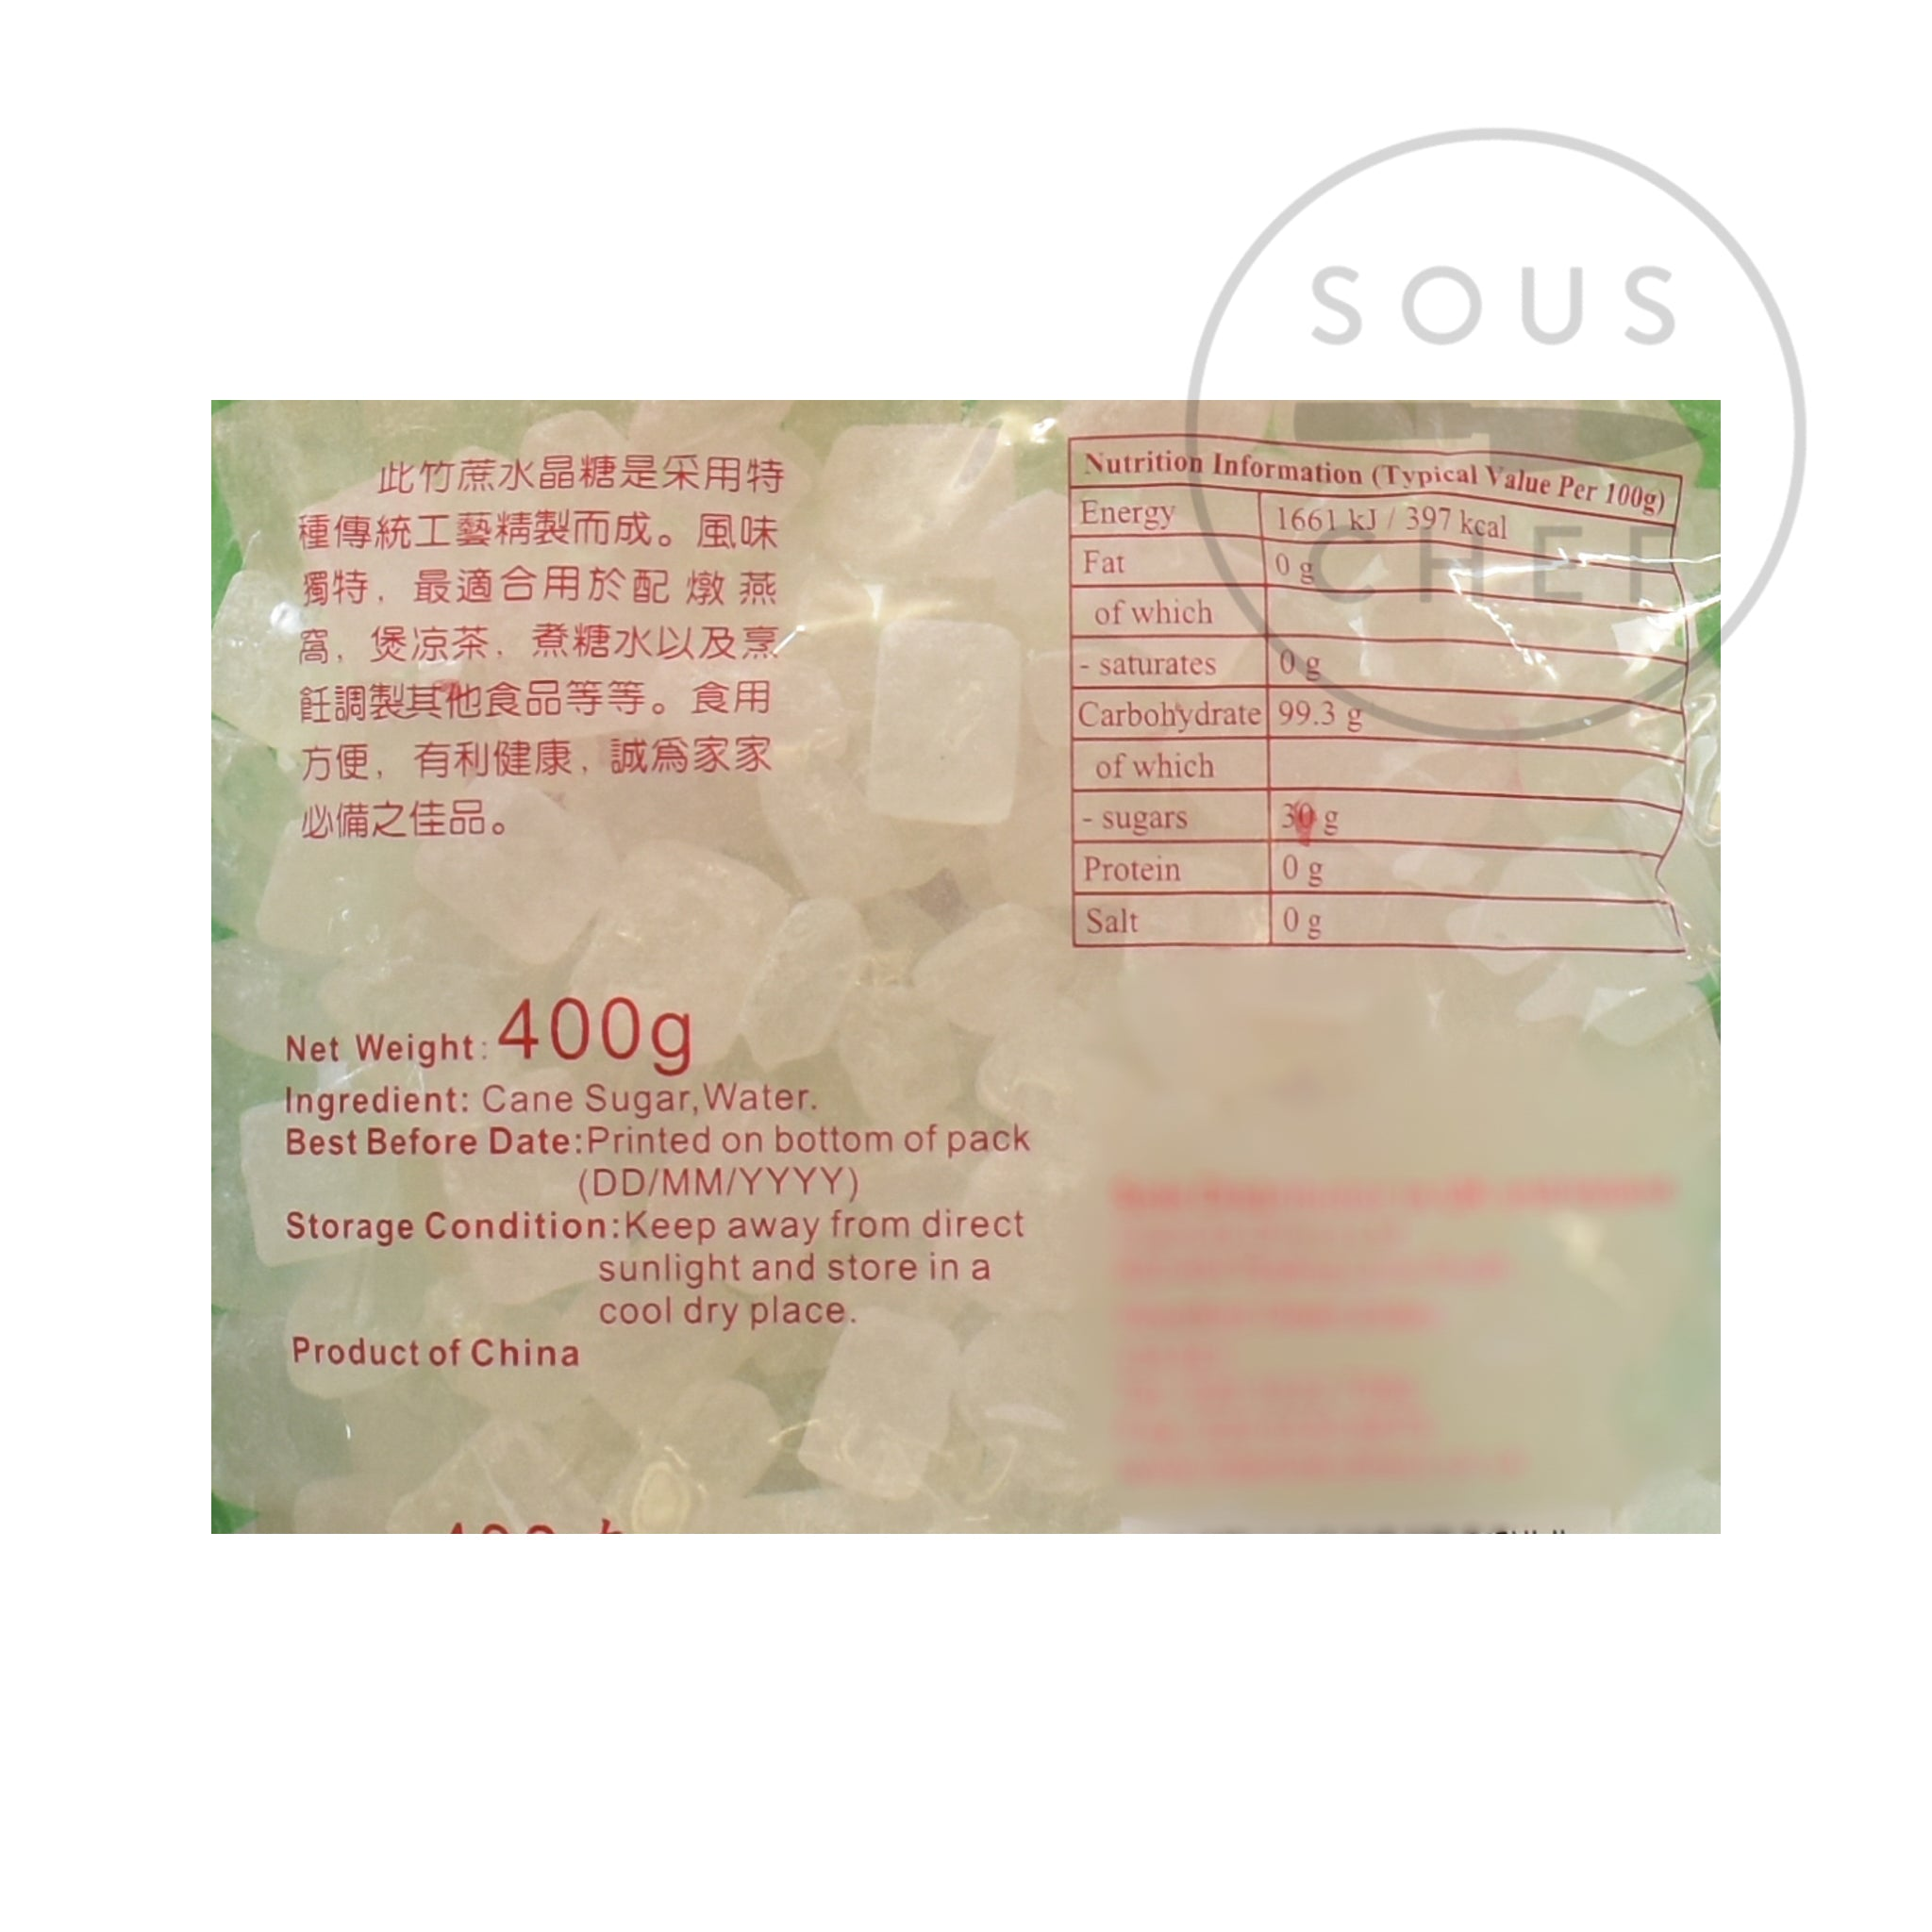 Chinese White Lump Sugar 400g nutritional information ingredients